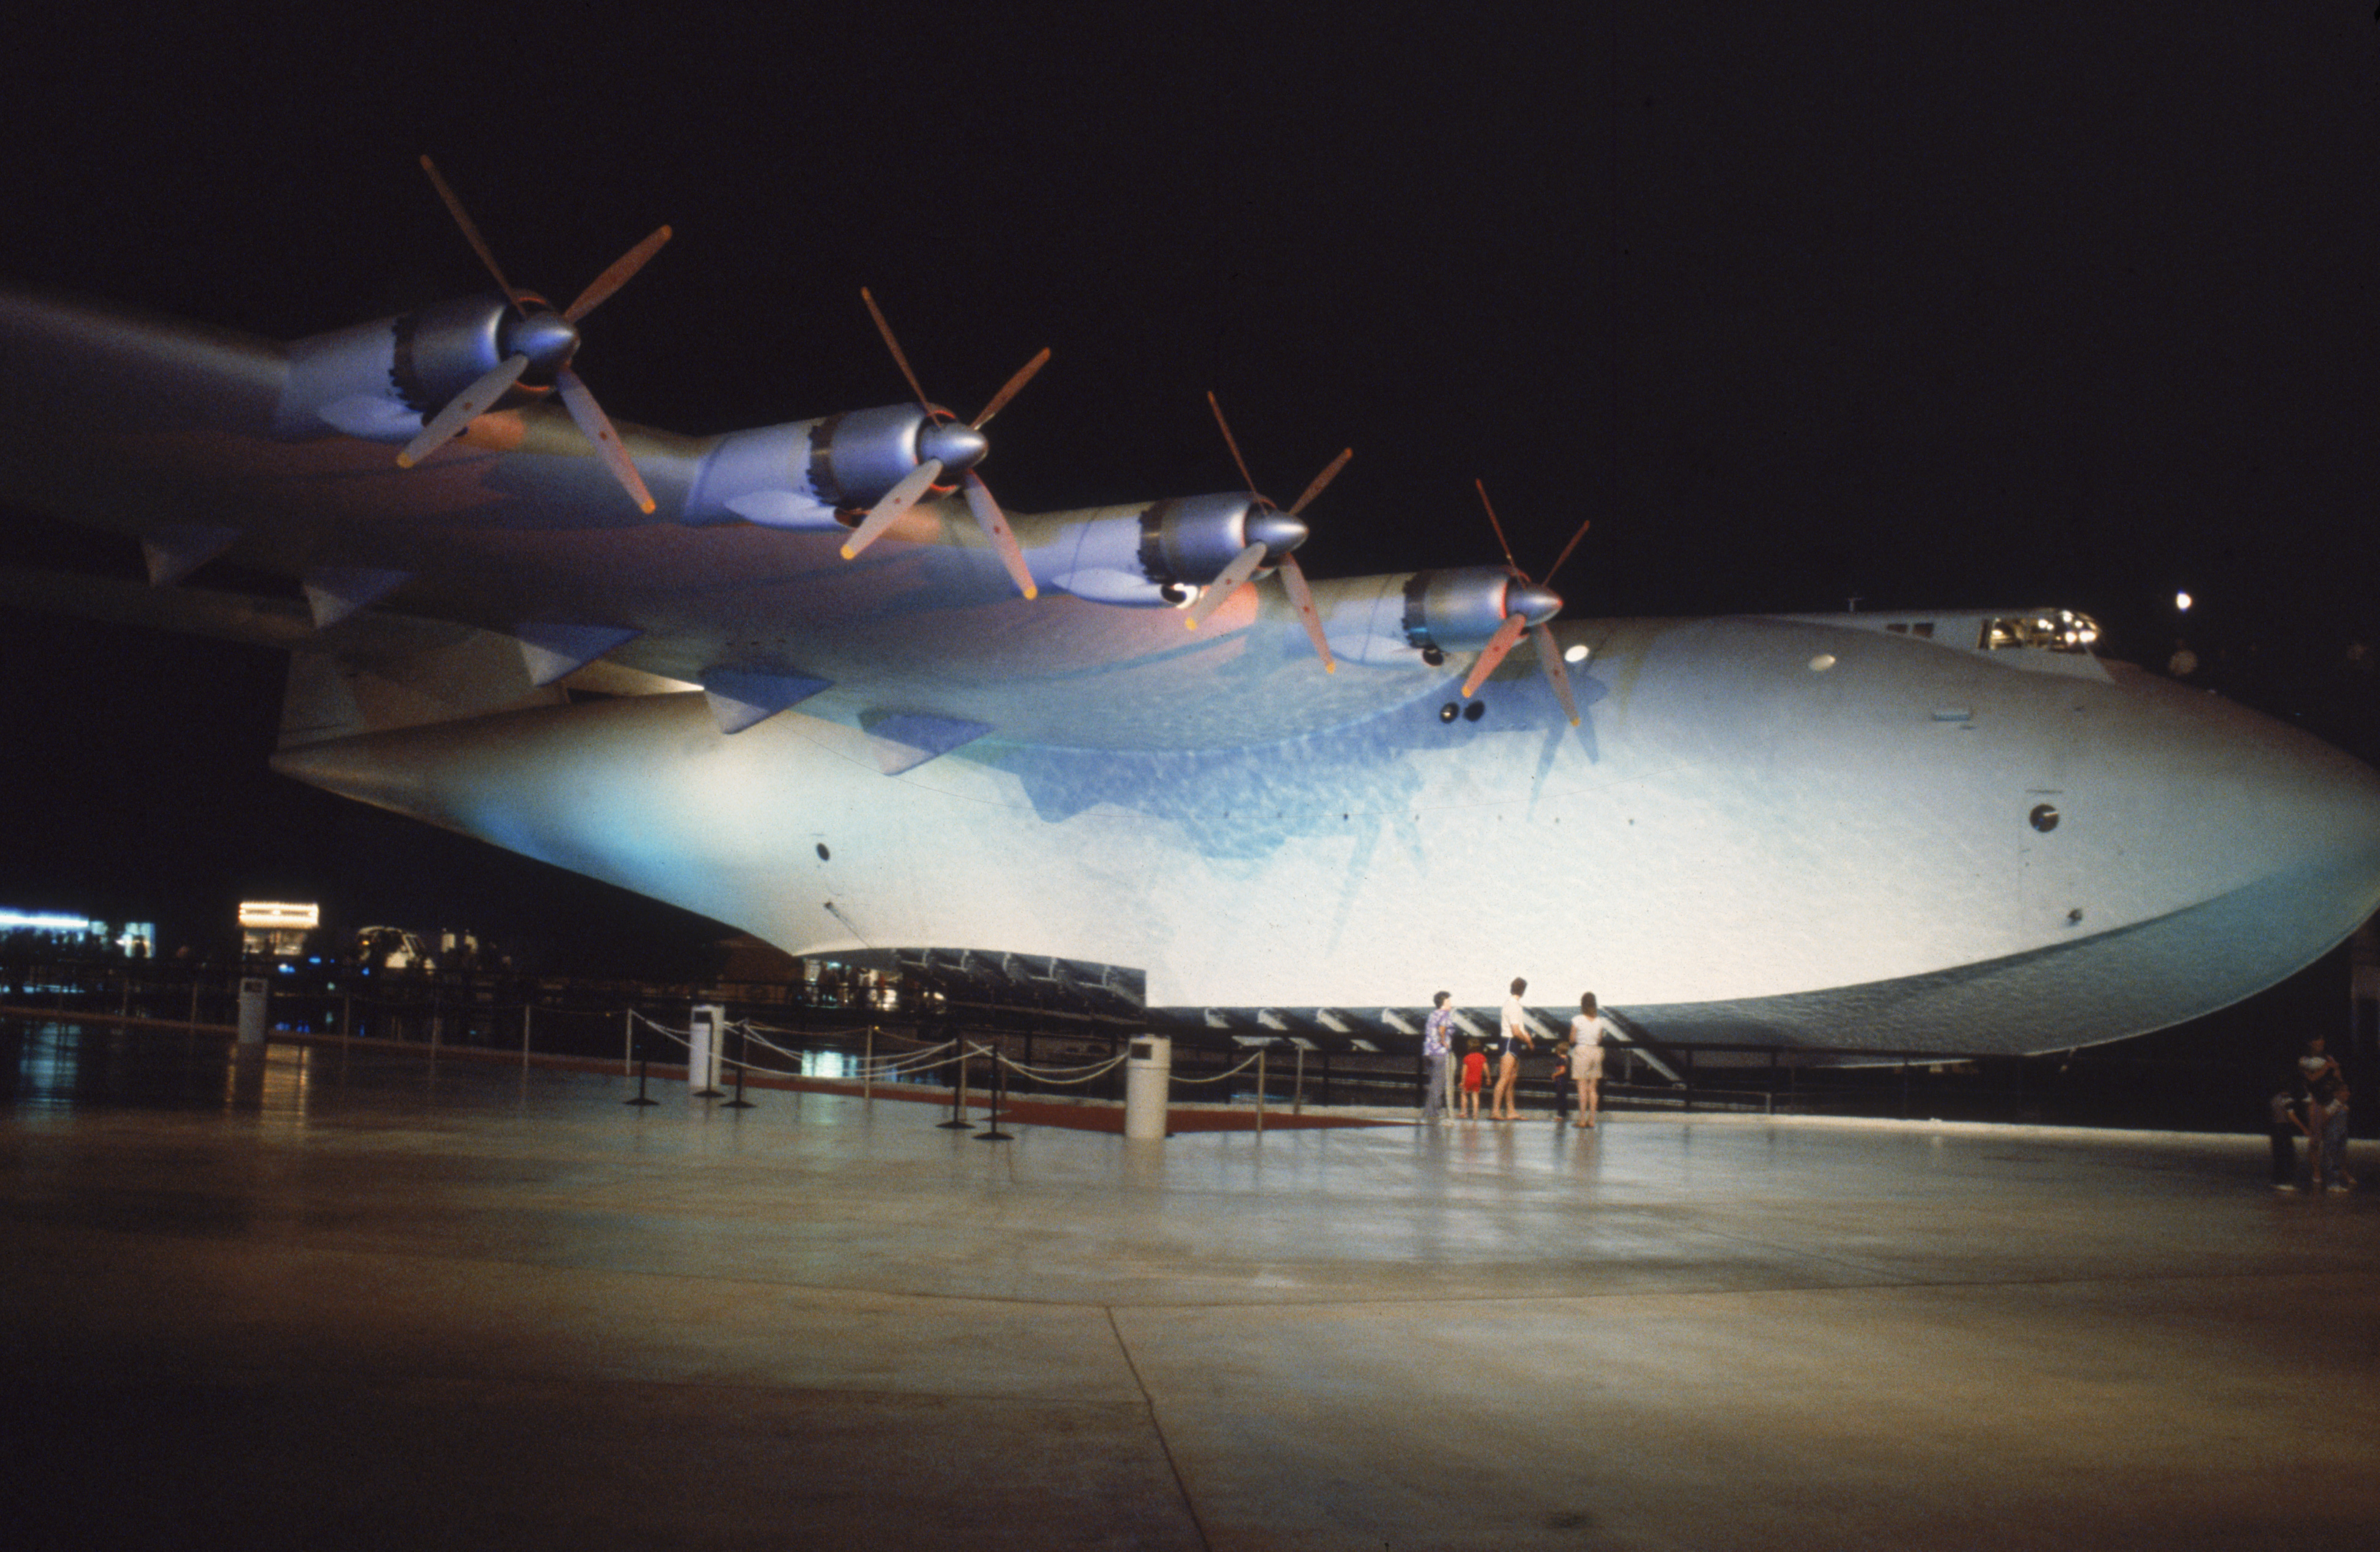 Spruce Goose: Get the inside story of an aviation icon | CNN Travel